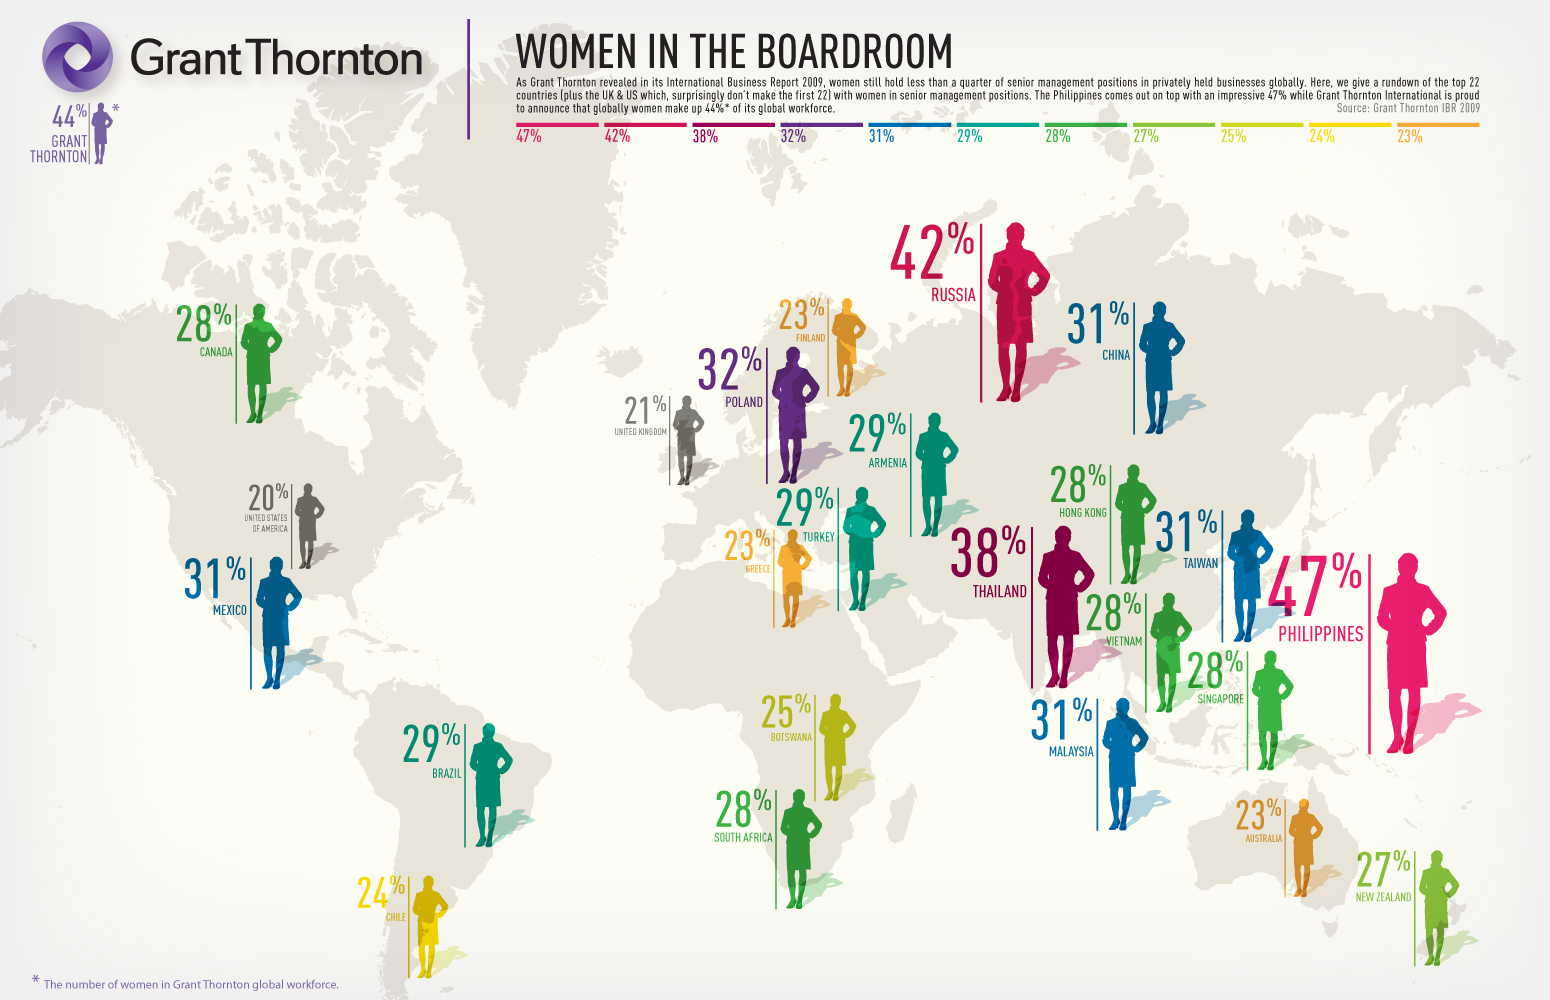 Women in the boardroom - Grant Thornton (Source:  Grant Thornton )